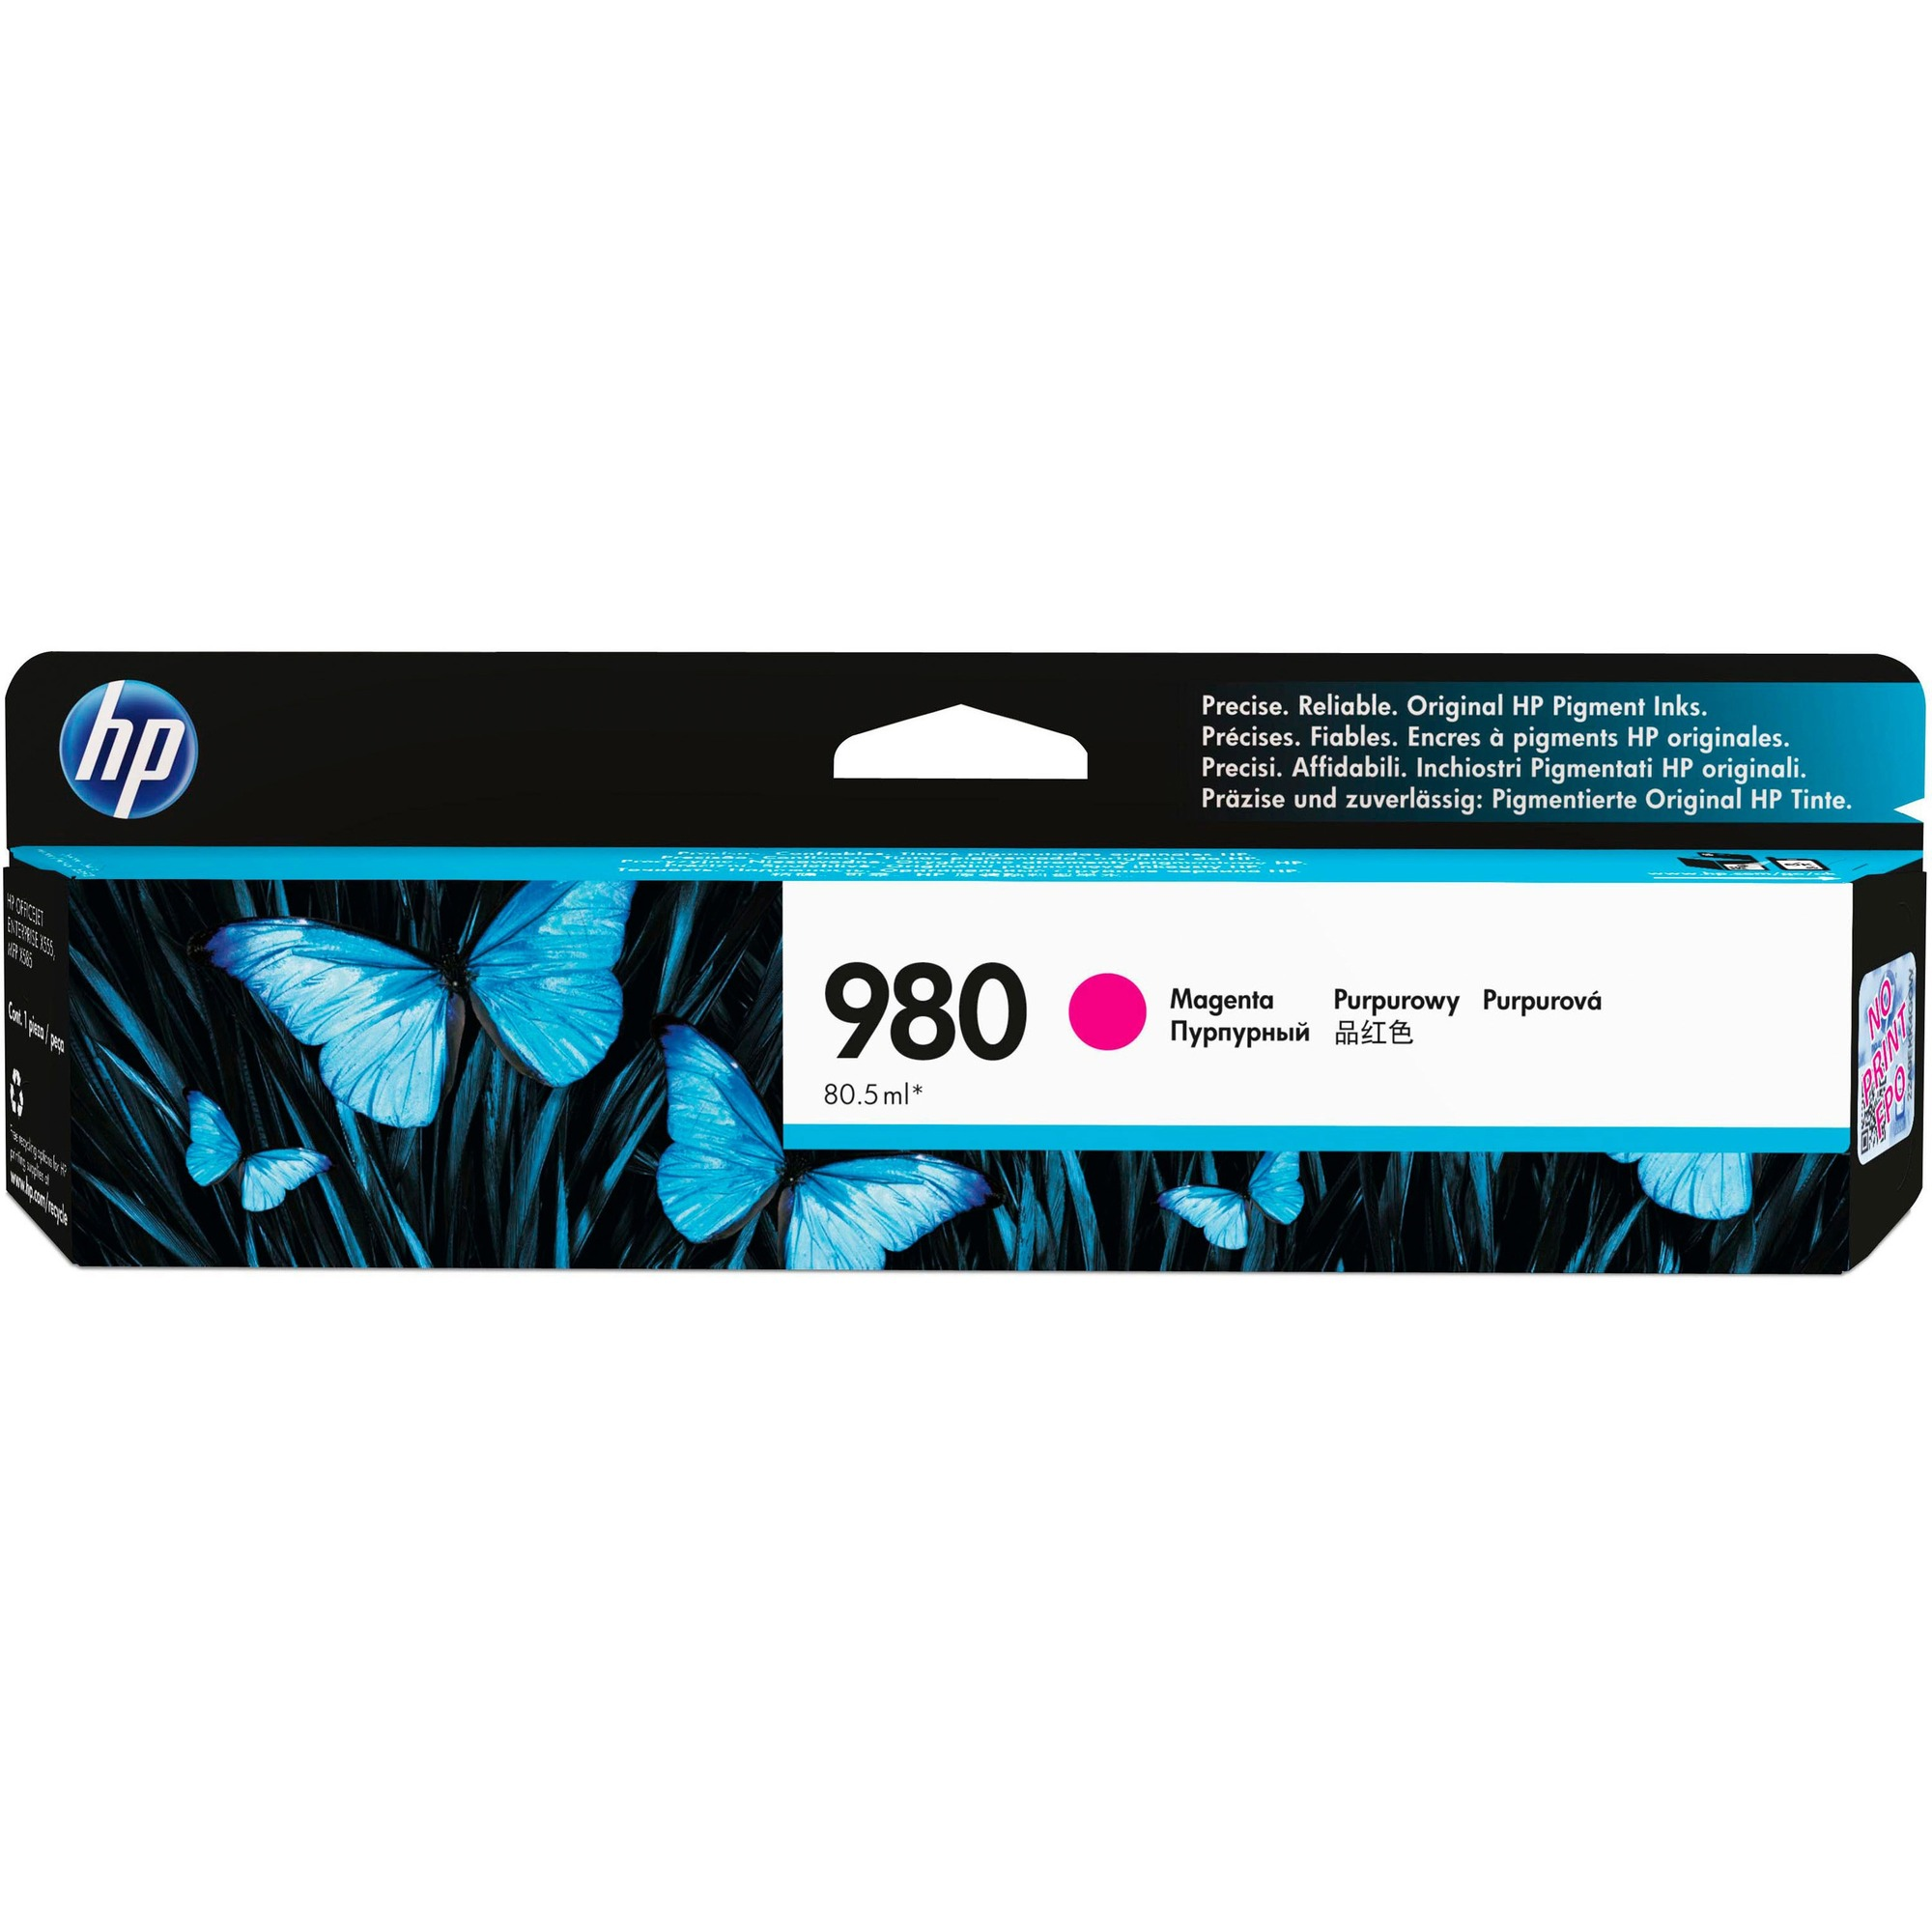 HP 980 Ink Cartridge - Magenta